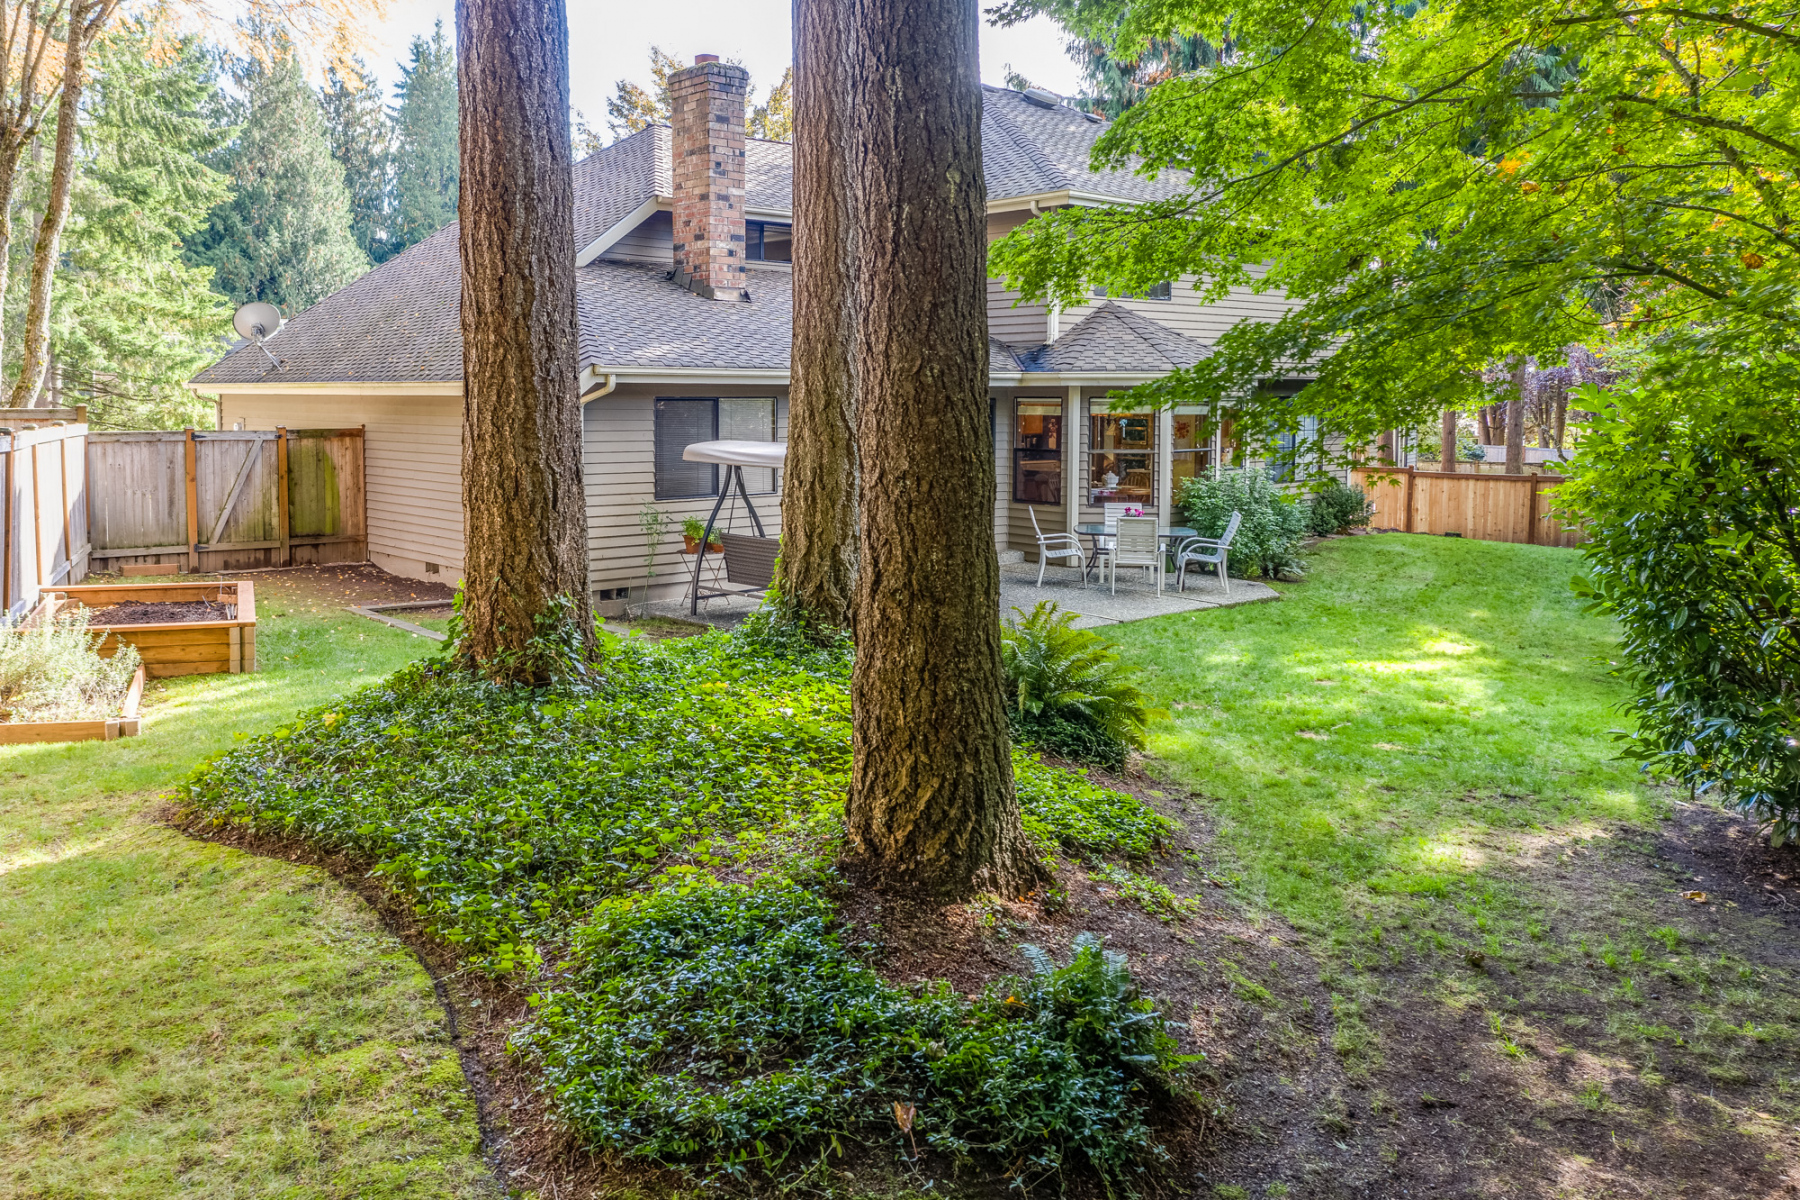 14151-177th-Ave-NE-Redmond-34